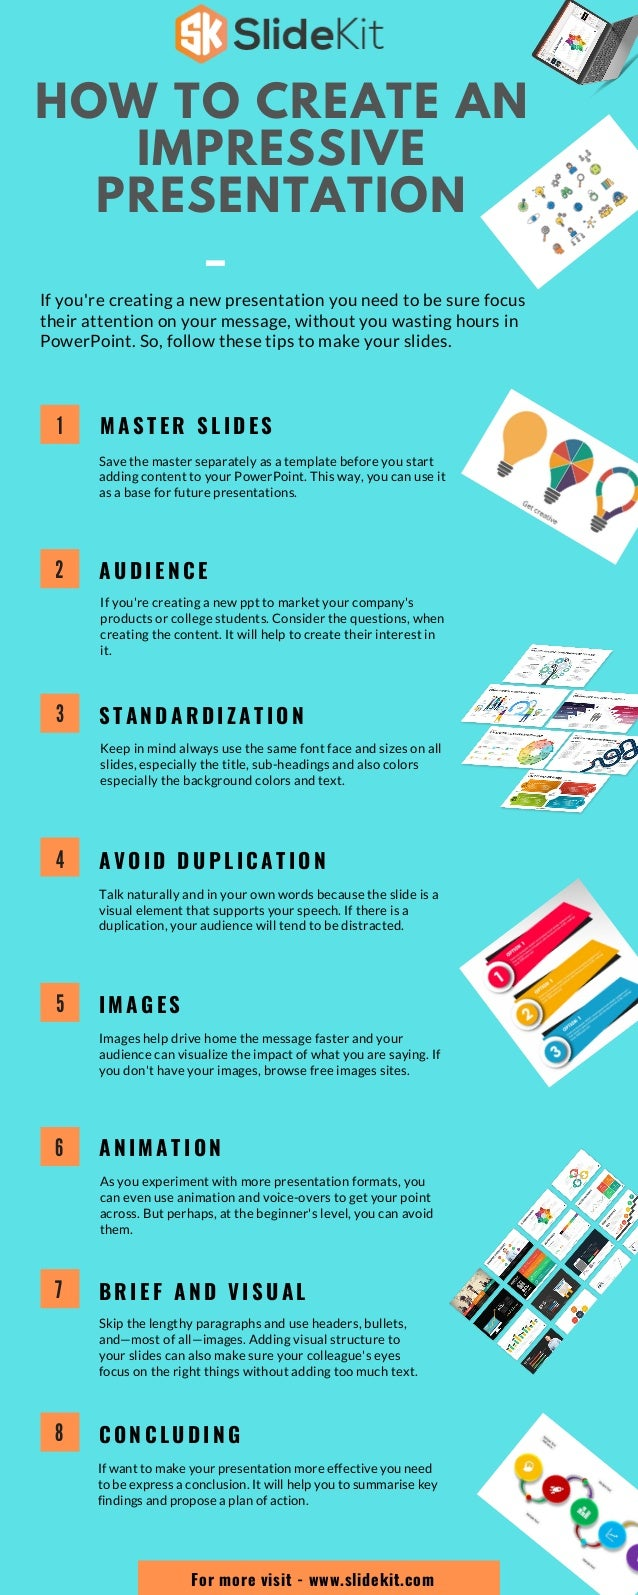 1 M A S T E R S L I D E S Save the master separately as a template before you start adding content to your PowerPoint. Thi...